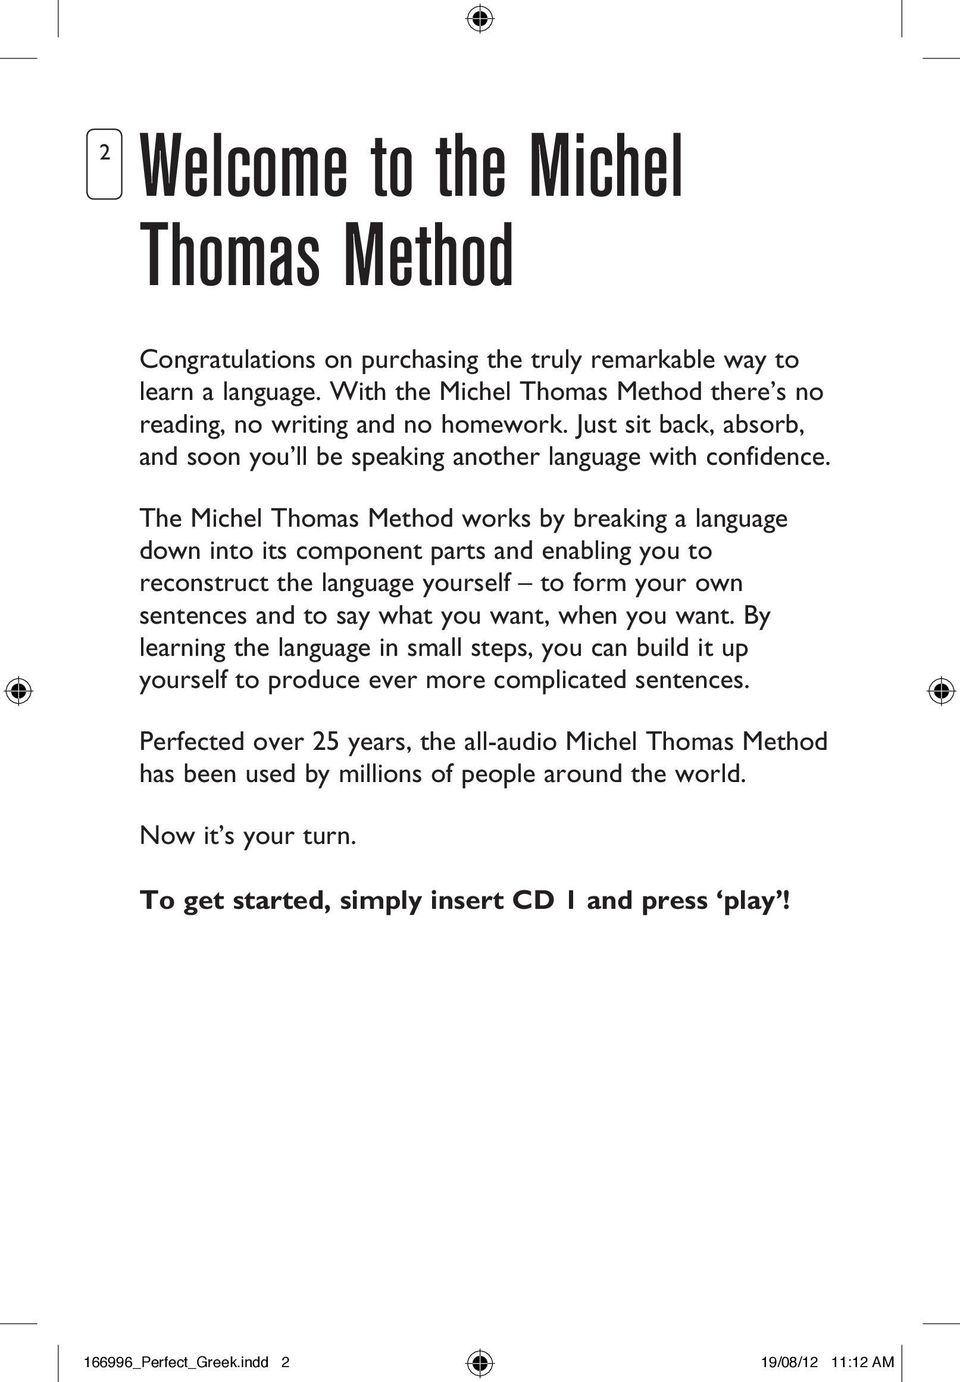 The Michel Thomas Method works by breaking a language down into its component parts and enabling you to reconstruct the language yourself to form your own sentences and to say what you want, when you